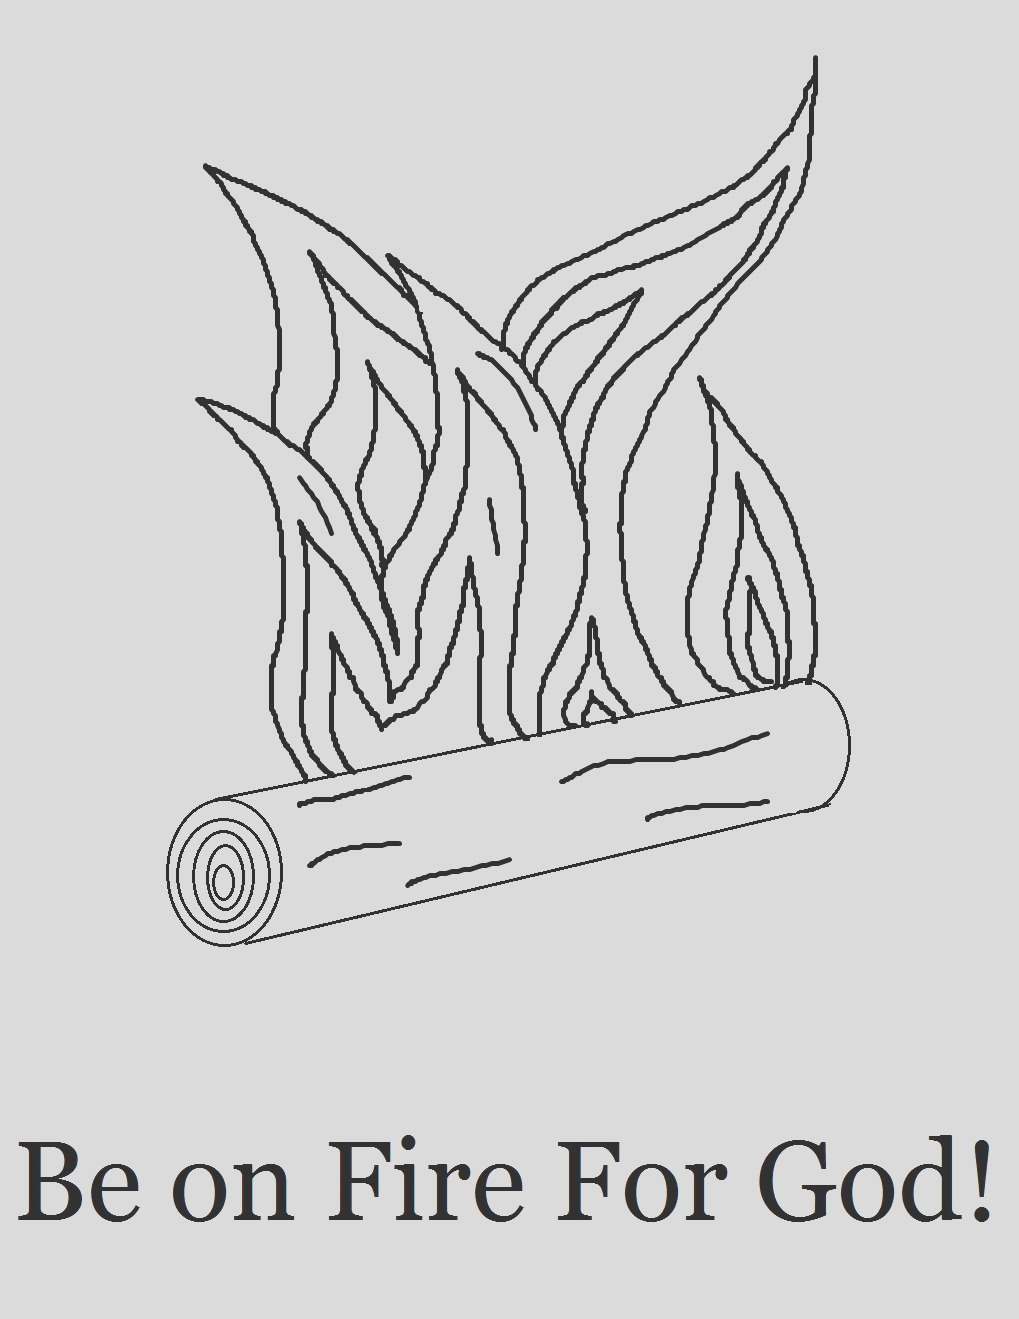 be on fire for god coloring page